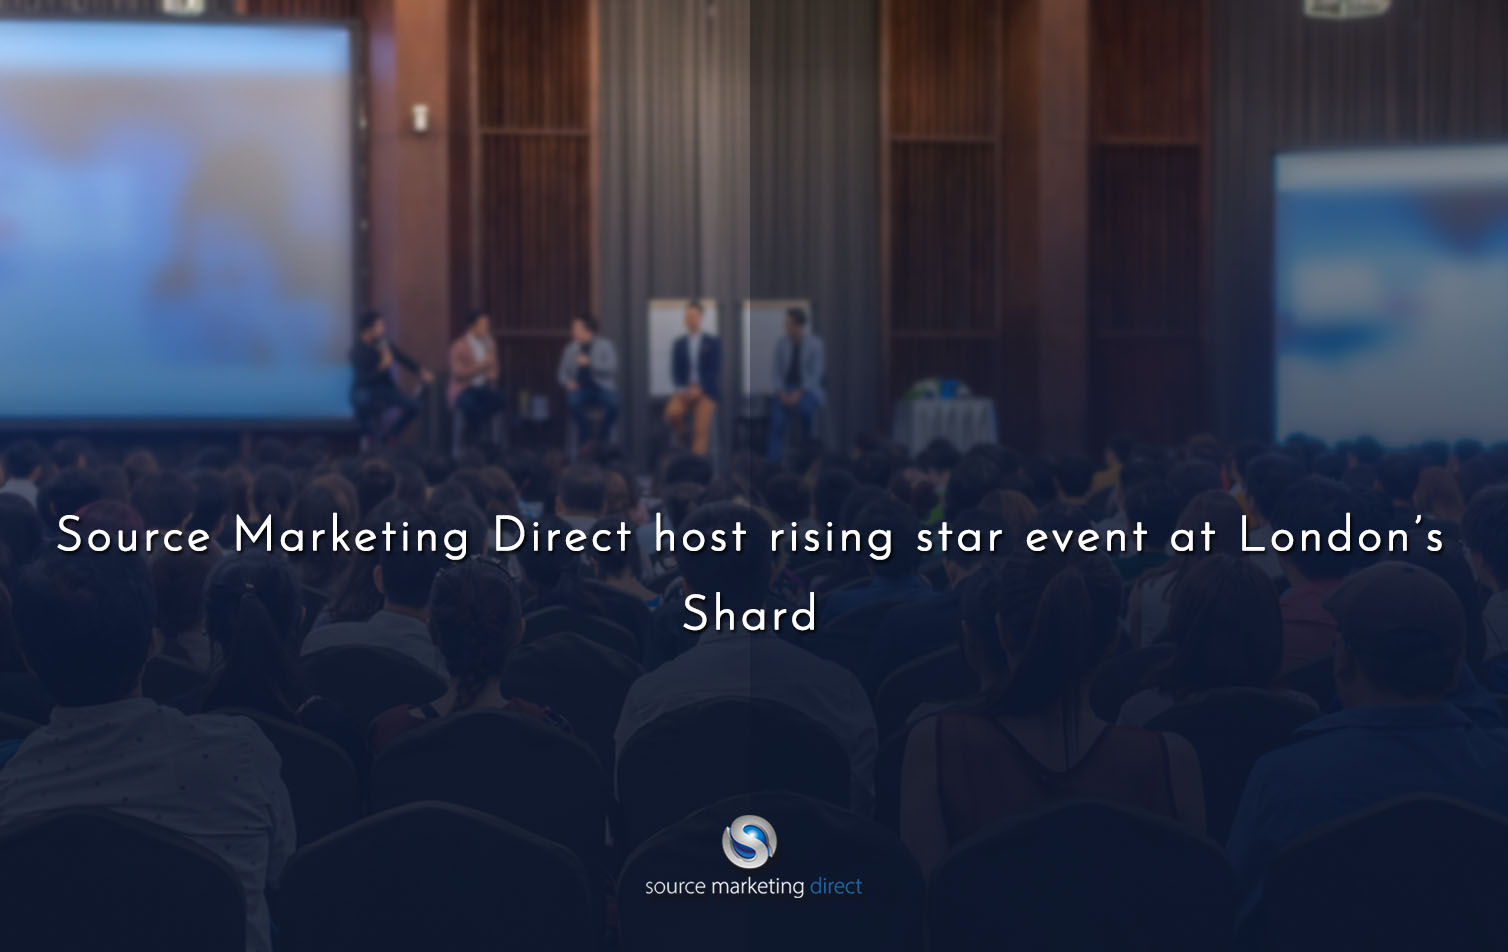 Source Marketing Direct host rising star event at London's Shard.